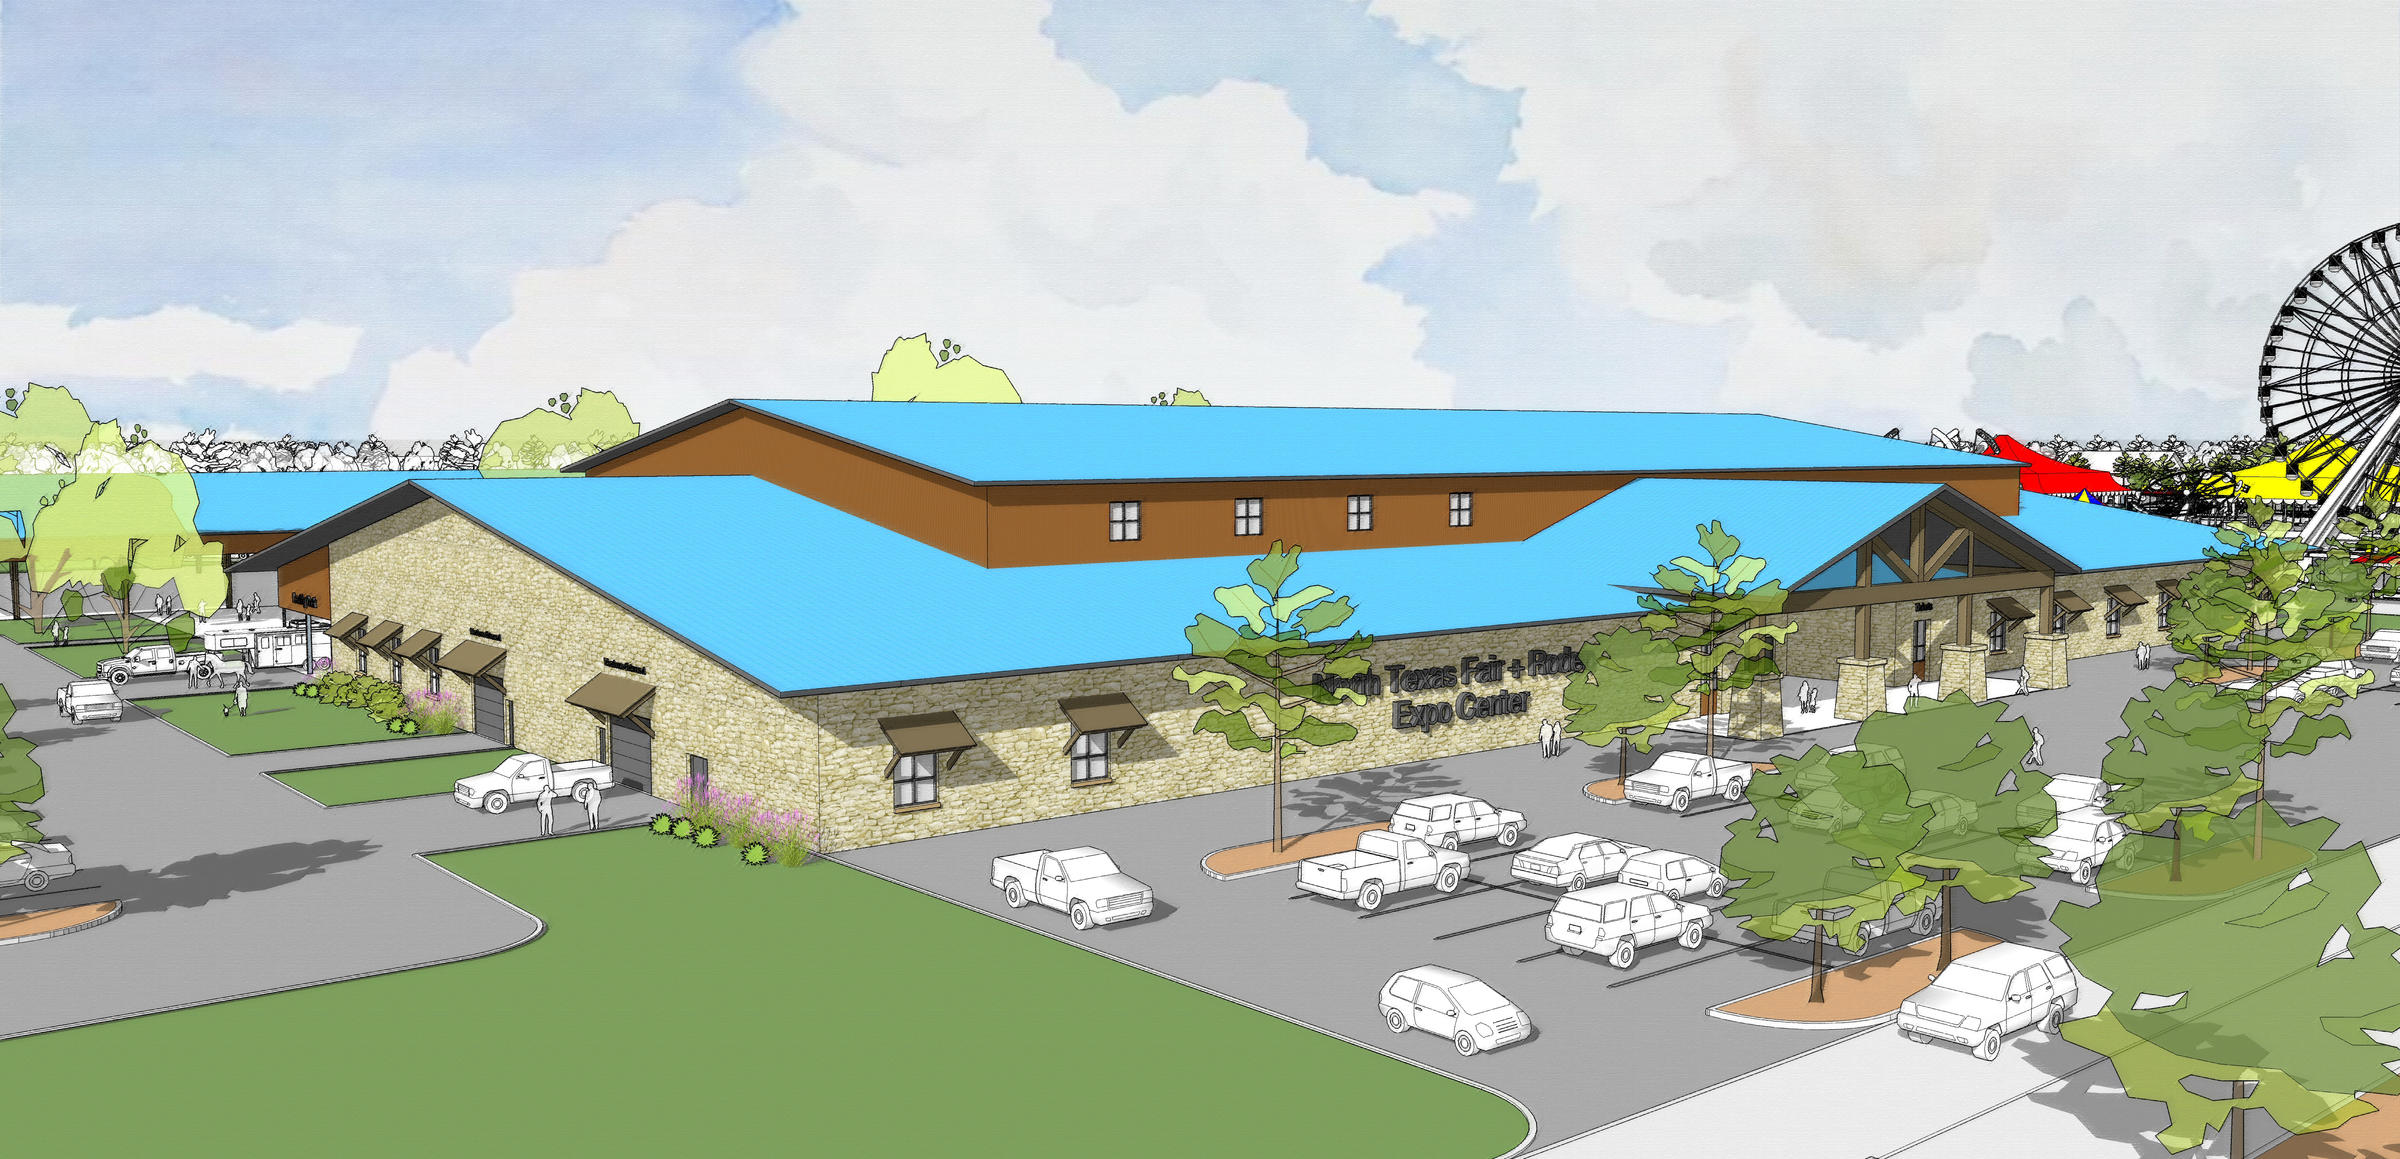 A Rendering Of The Exhibition Hall Thatu0027s Part Of The Planned North Texas Expo  Center In Denton, Texas.